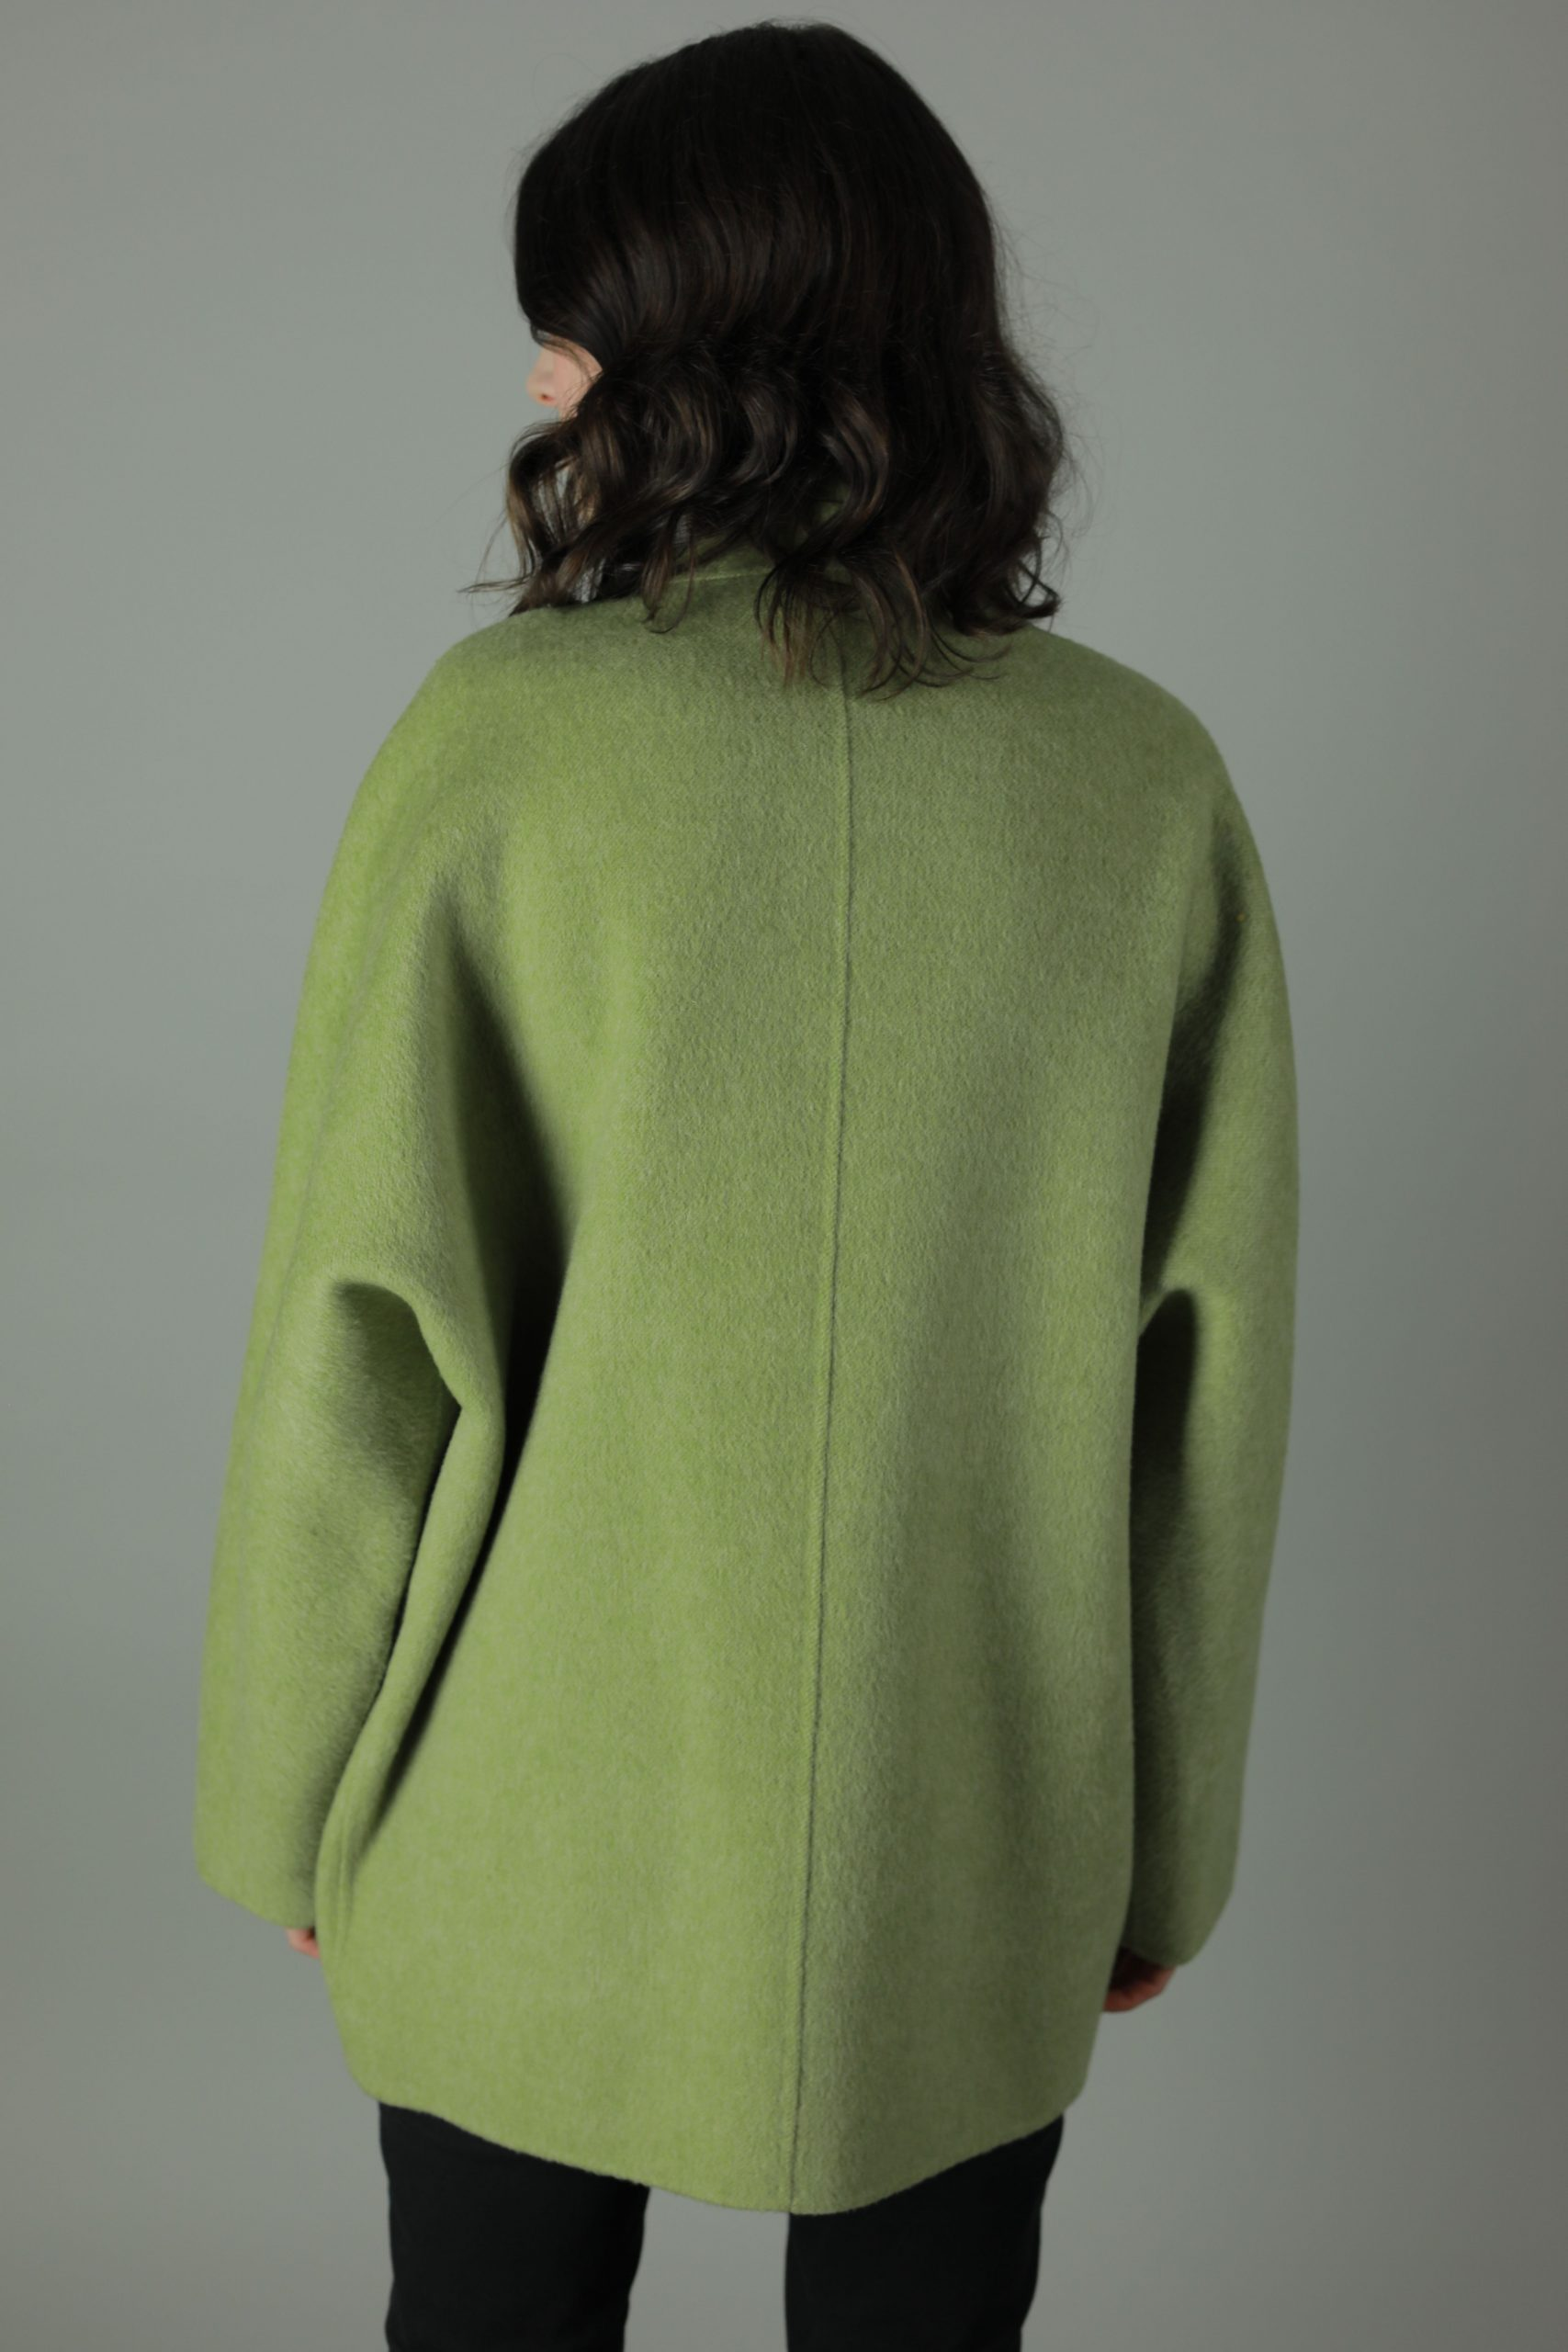 Luxury in The Chloe Cashmere Coat. Thigh length for all round wear, this coat features 100% soft Cashmere, loose fitting style, two front patch pockets and beautiful white soft cashmere interior for inside out look. Back view.